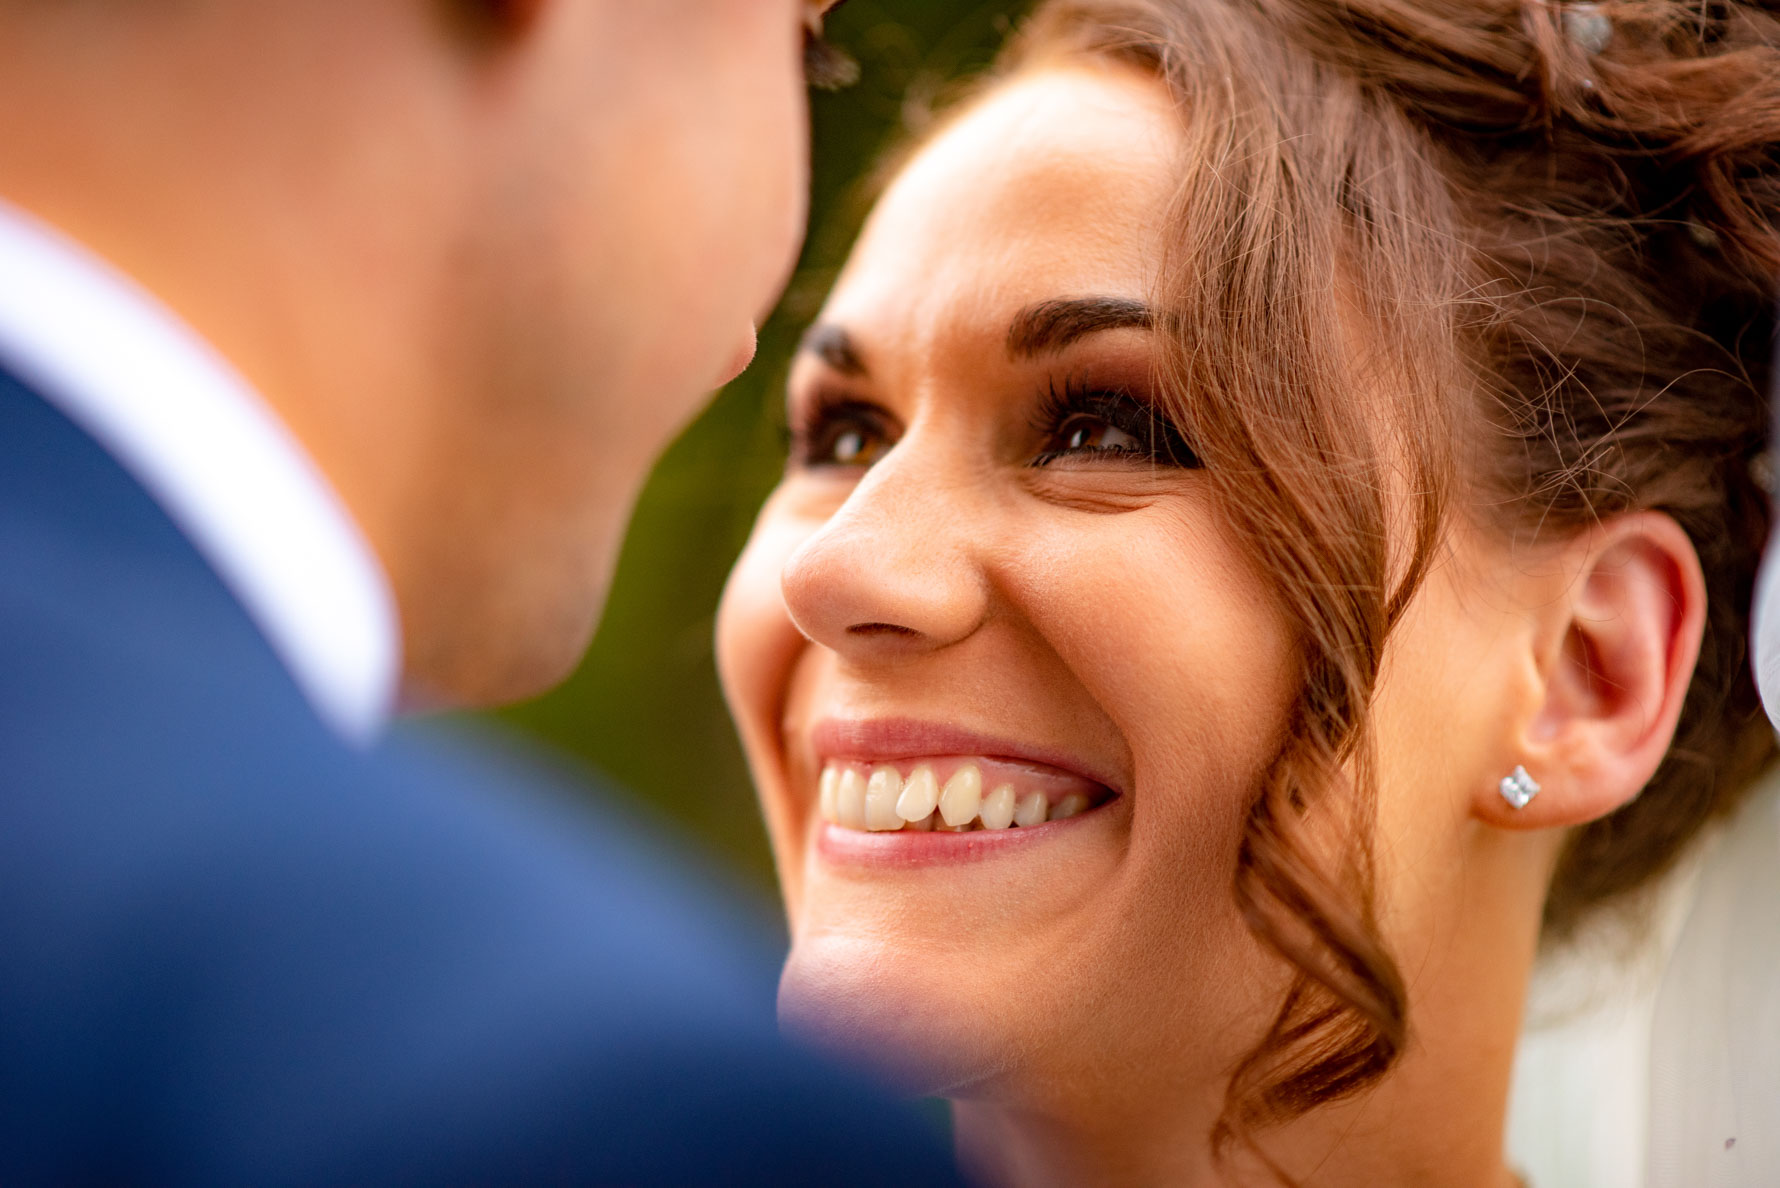 Bride's beaming smile